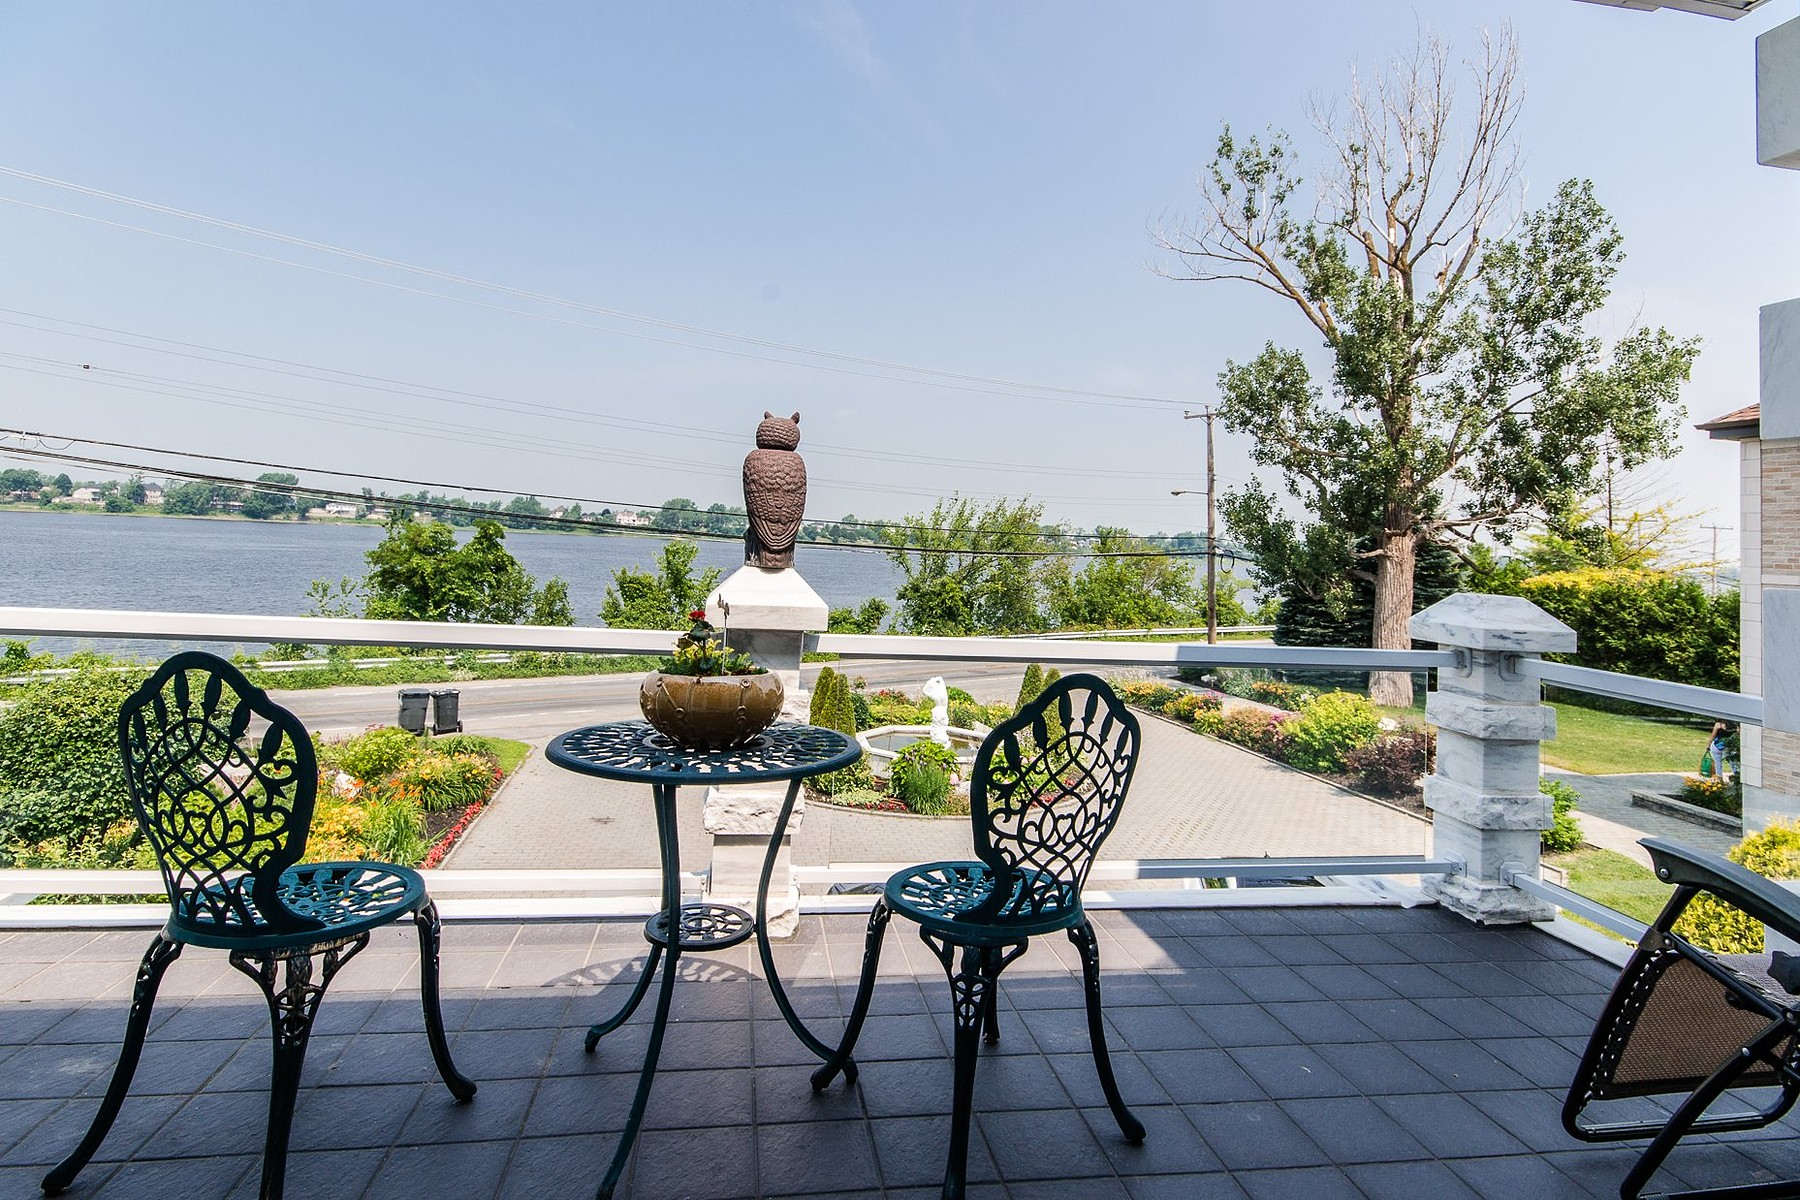 Additional photo for property listing at Rivière-des-Prairies / Pointe-aux-Trembles, Montréal 10460 Boul. Gouin E. Riviere Des Prairies Pointe Aux Trembles, Quebec H1C1B1 Canada